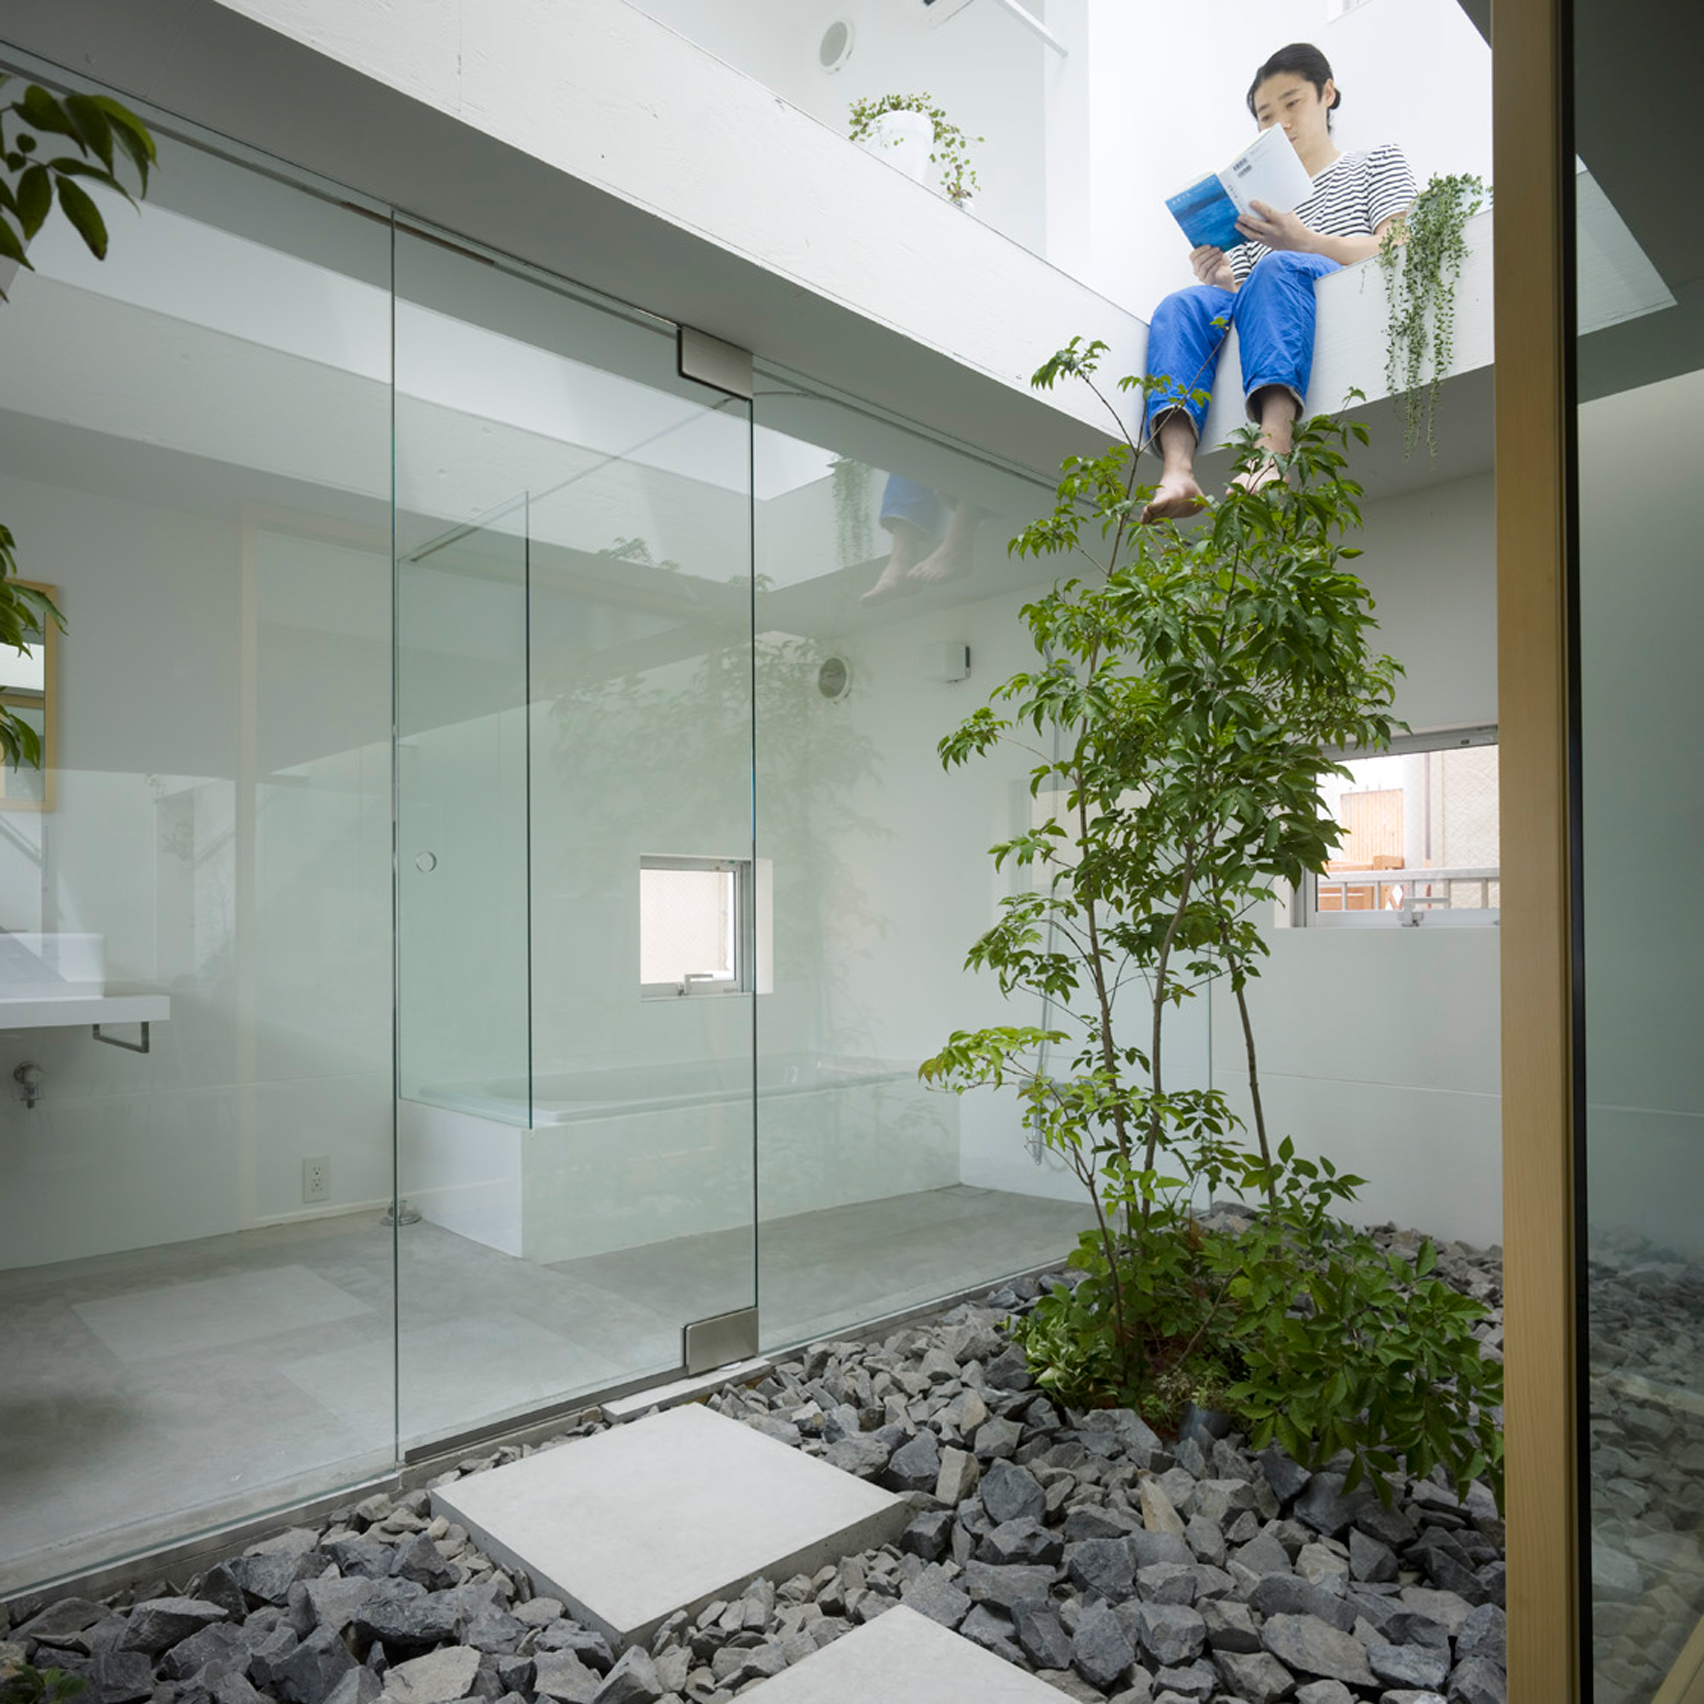 10 plant-filled homes from Dezeen's Pinterest boards that bring the outside in